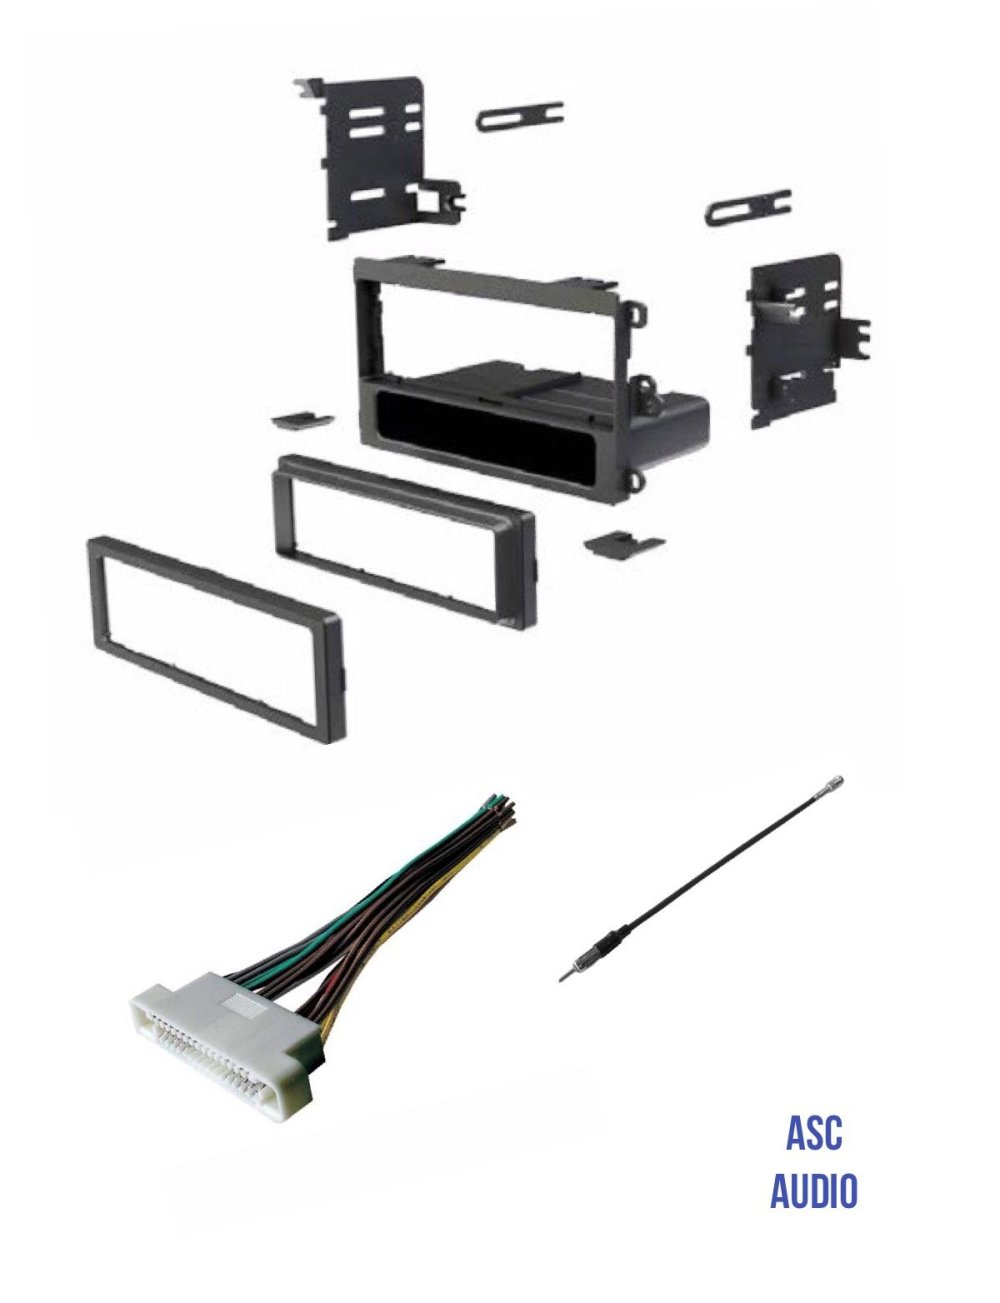 medium resolution of get quotations asc audio car stereo radio dash kit wire harness and antenna adapter to install